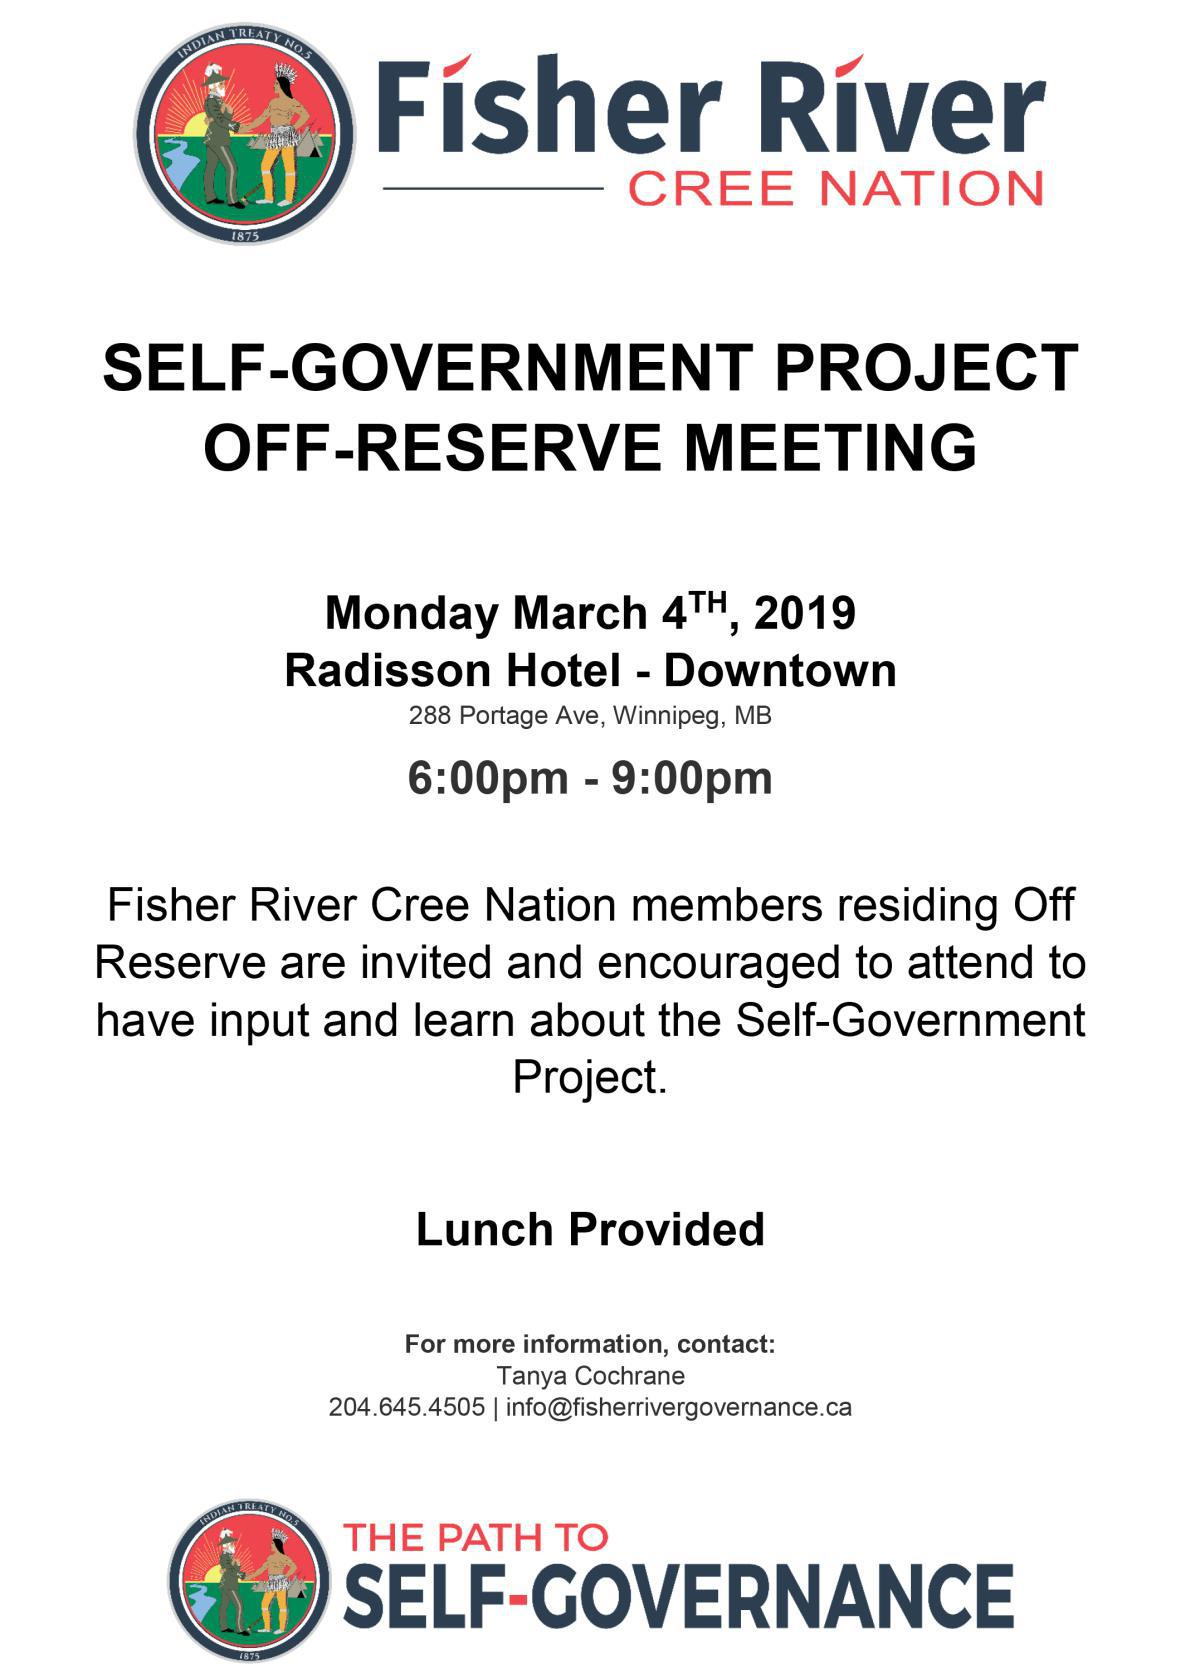 Notice of Off-Reserve Self Governance Meeting